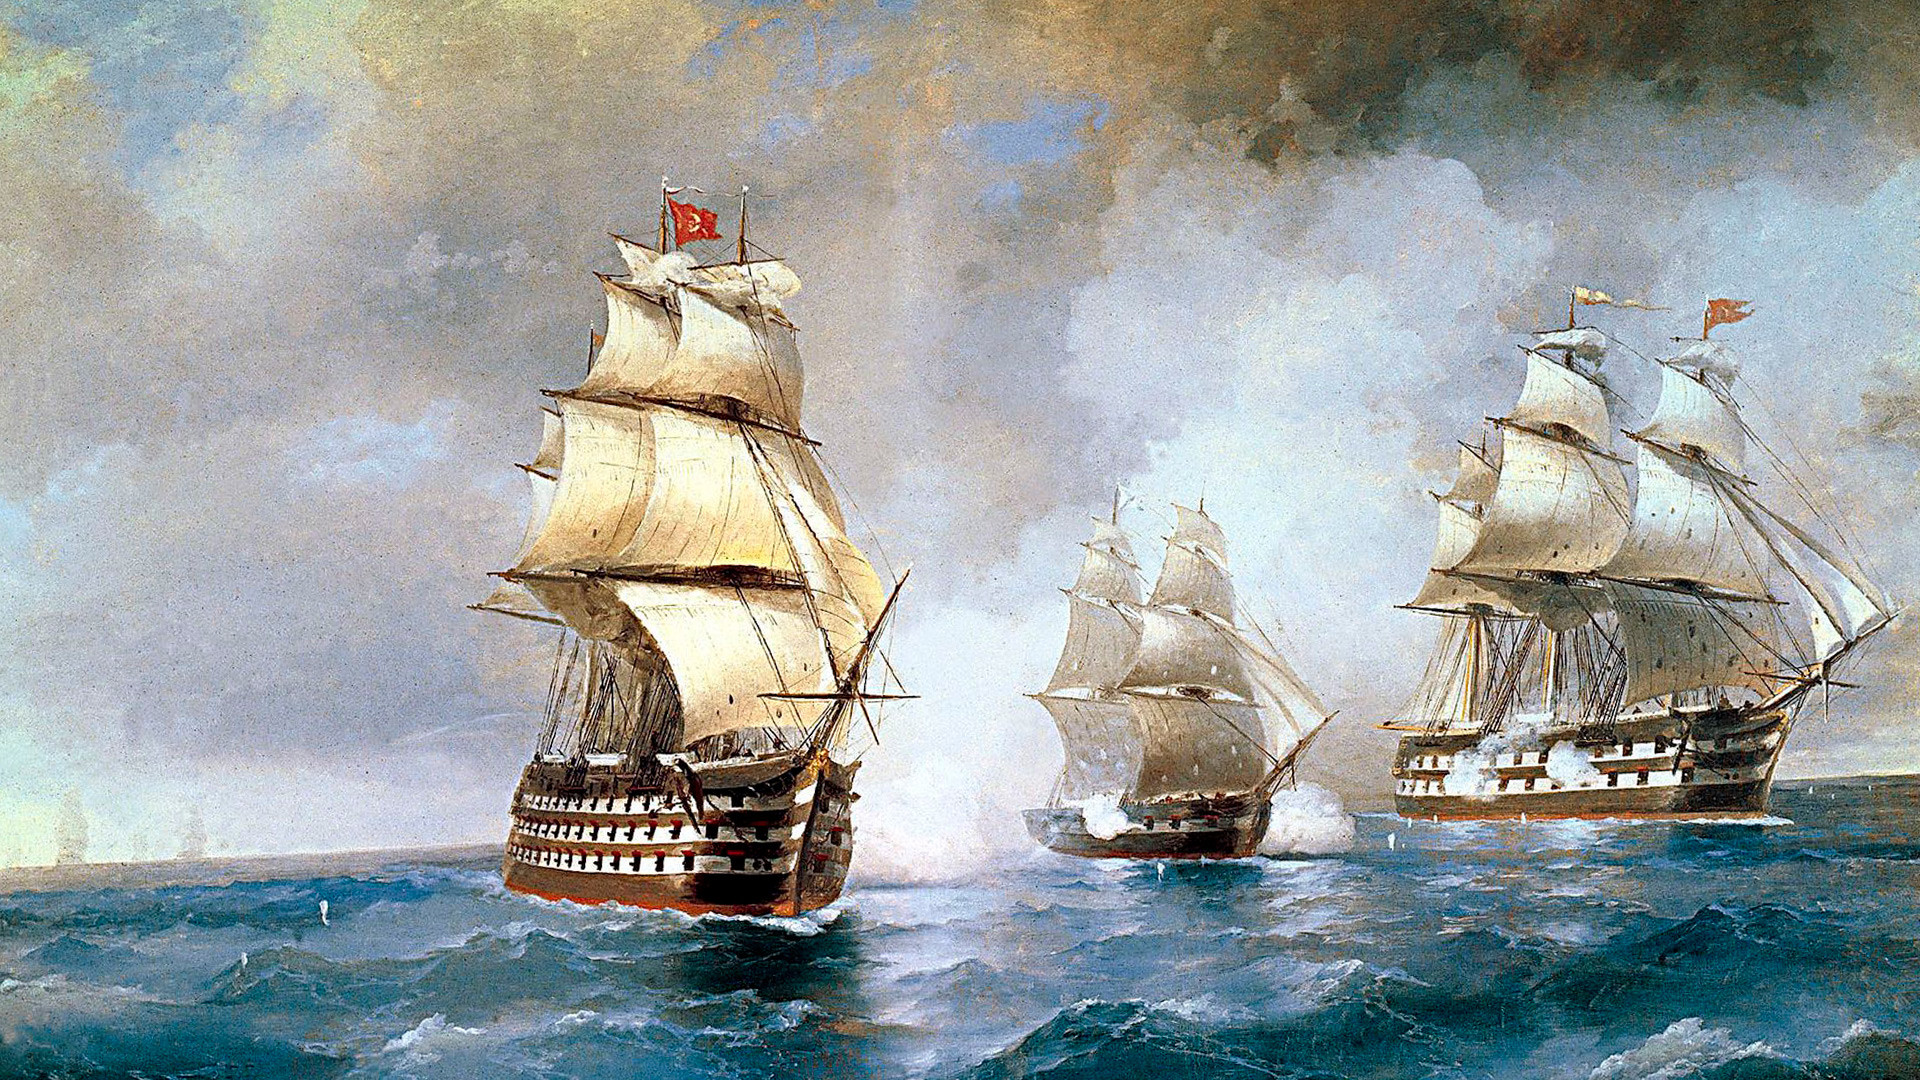 Brig Mercury attacked by two Turkish ships.